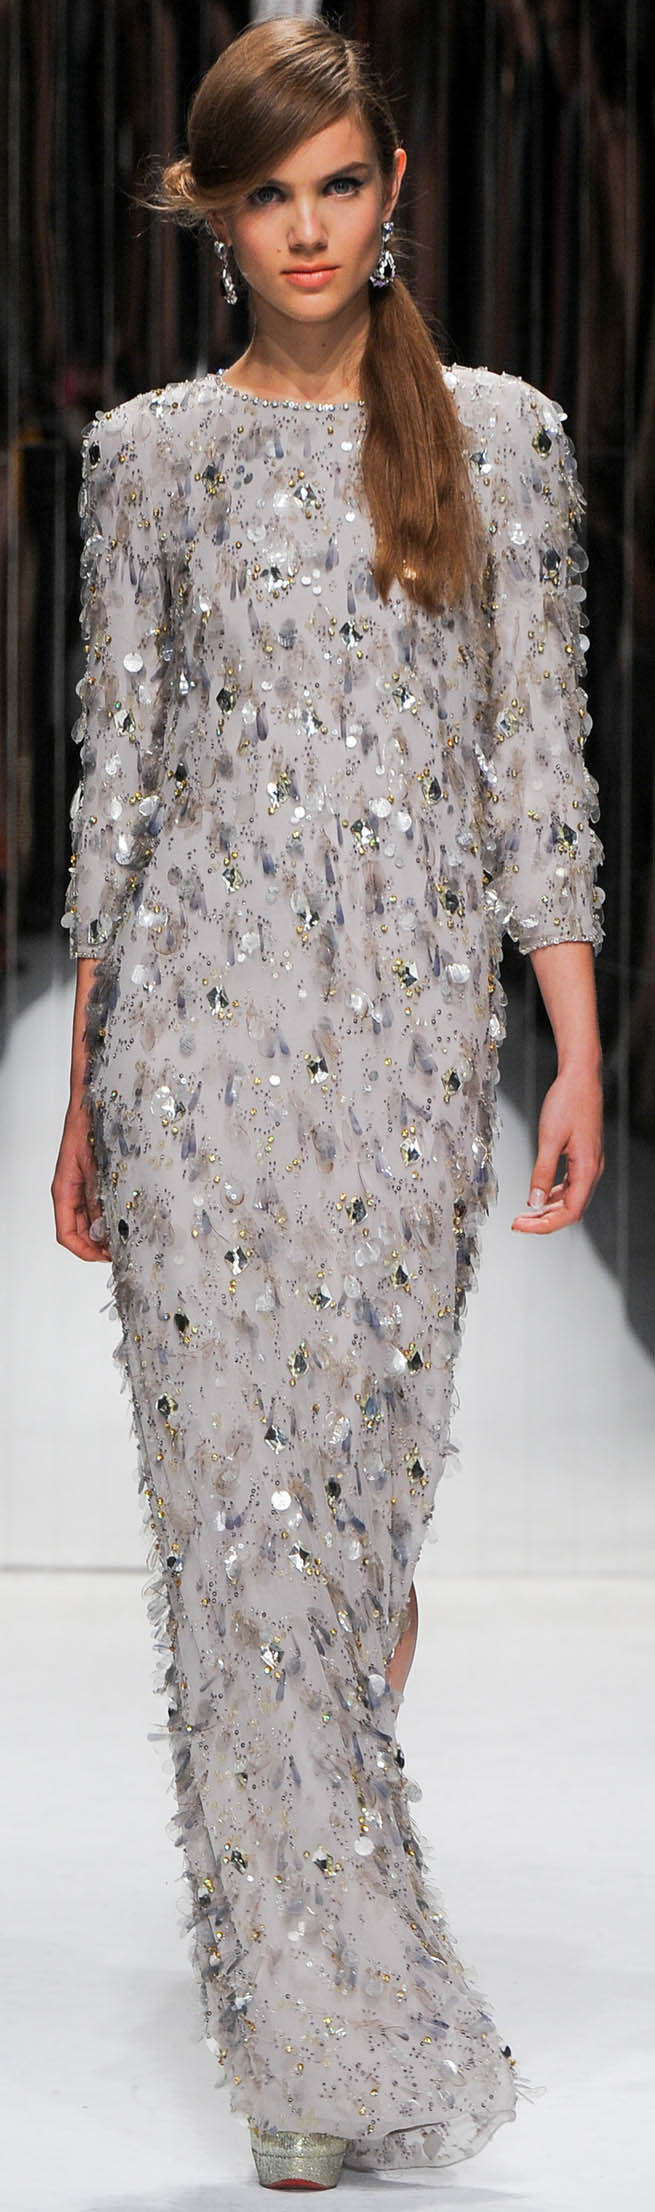 0ac2bf6717e72 Jenny Packham Spring 2013 - Evening Gowns